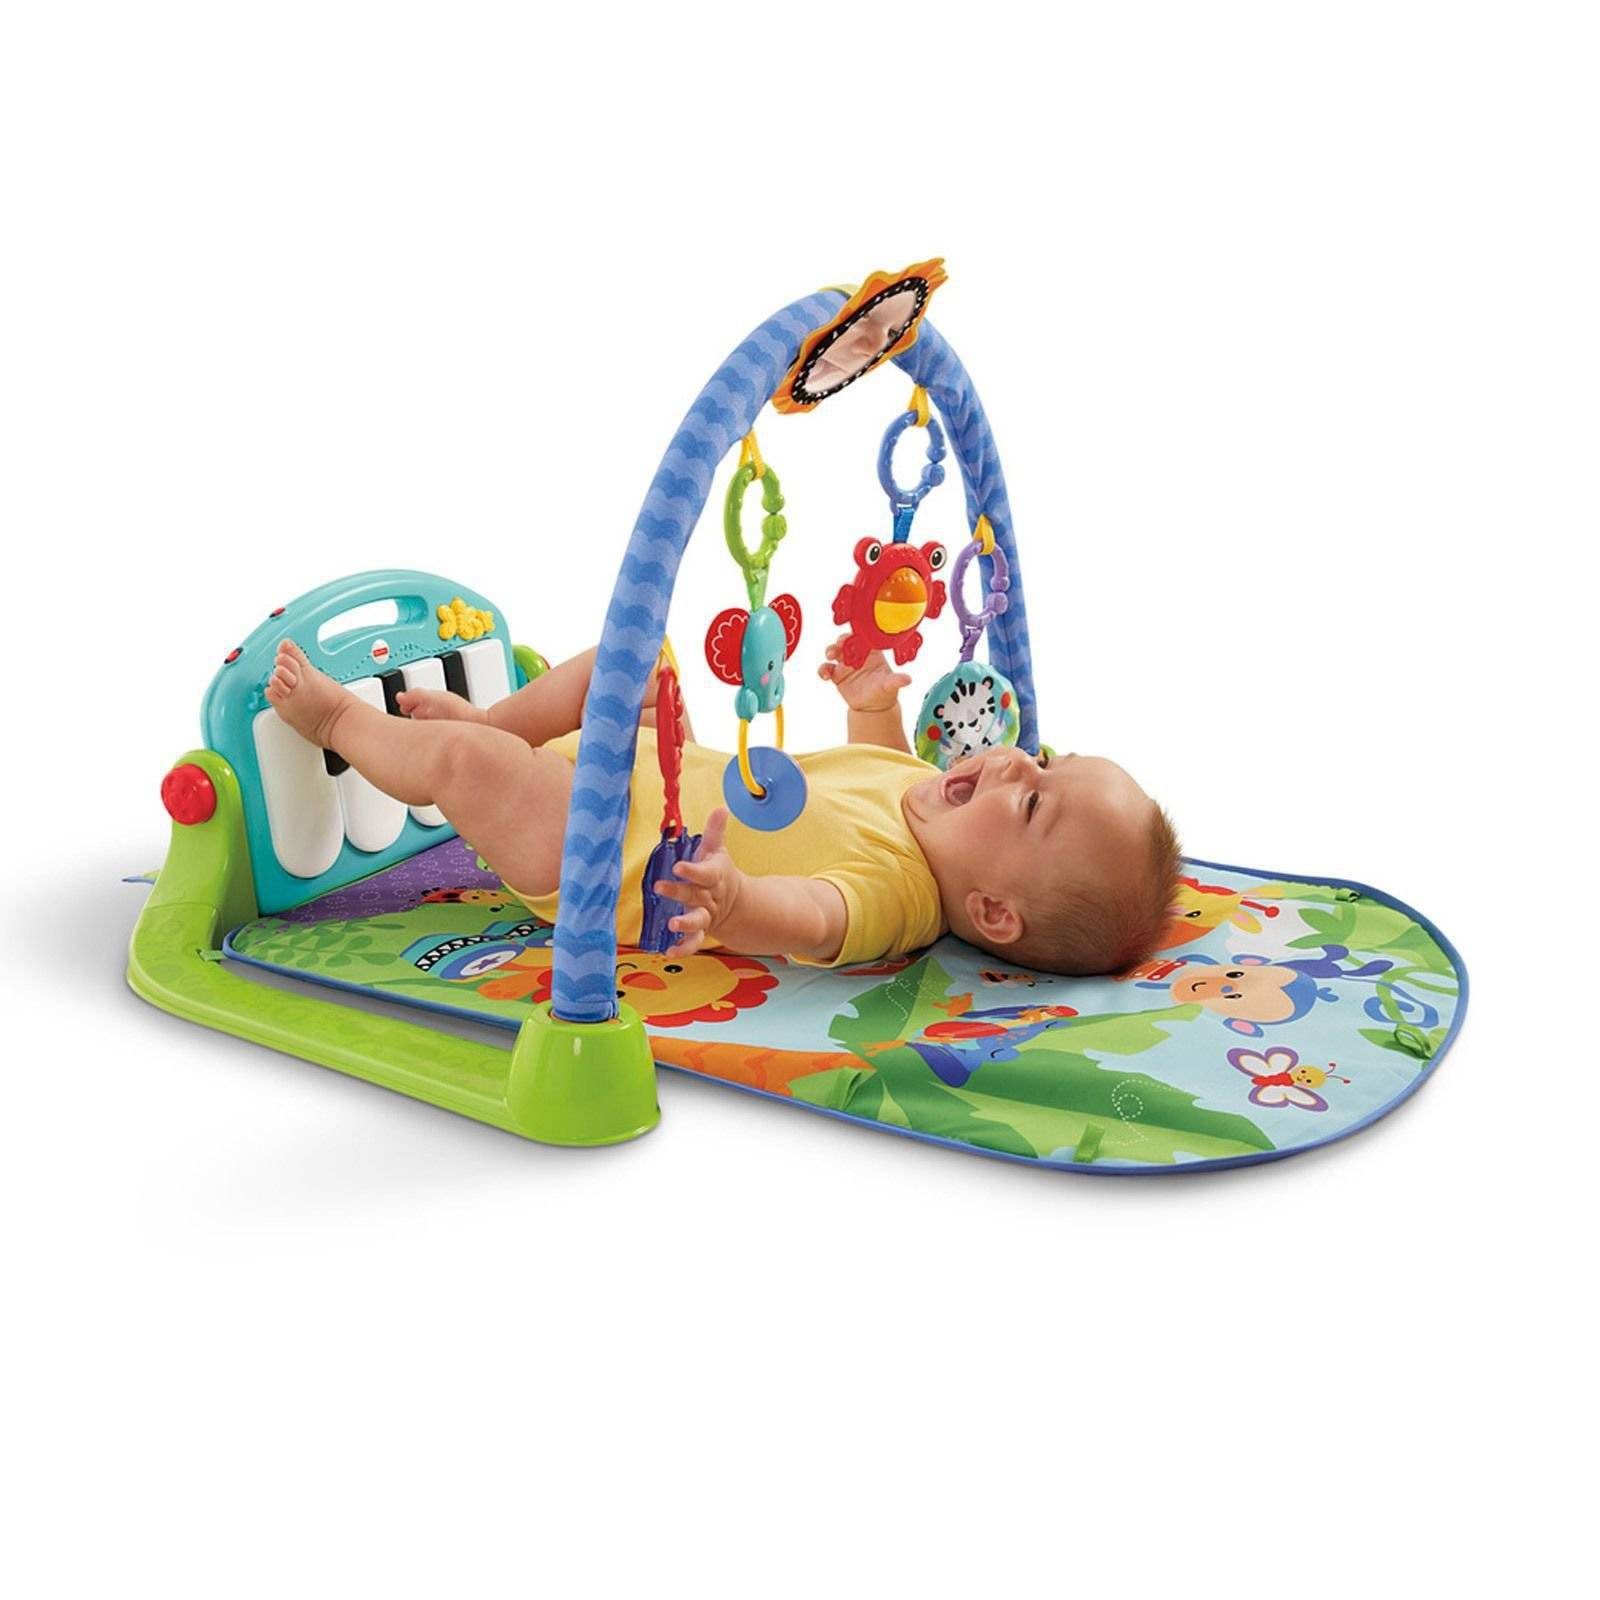 Fisher-Price And Play Piano Gym (BMH49)